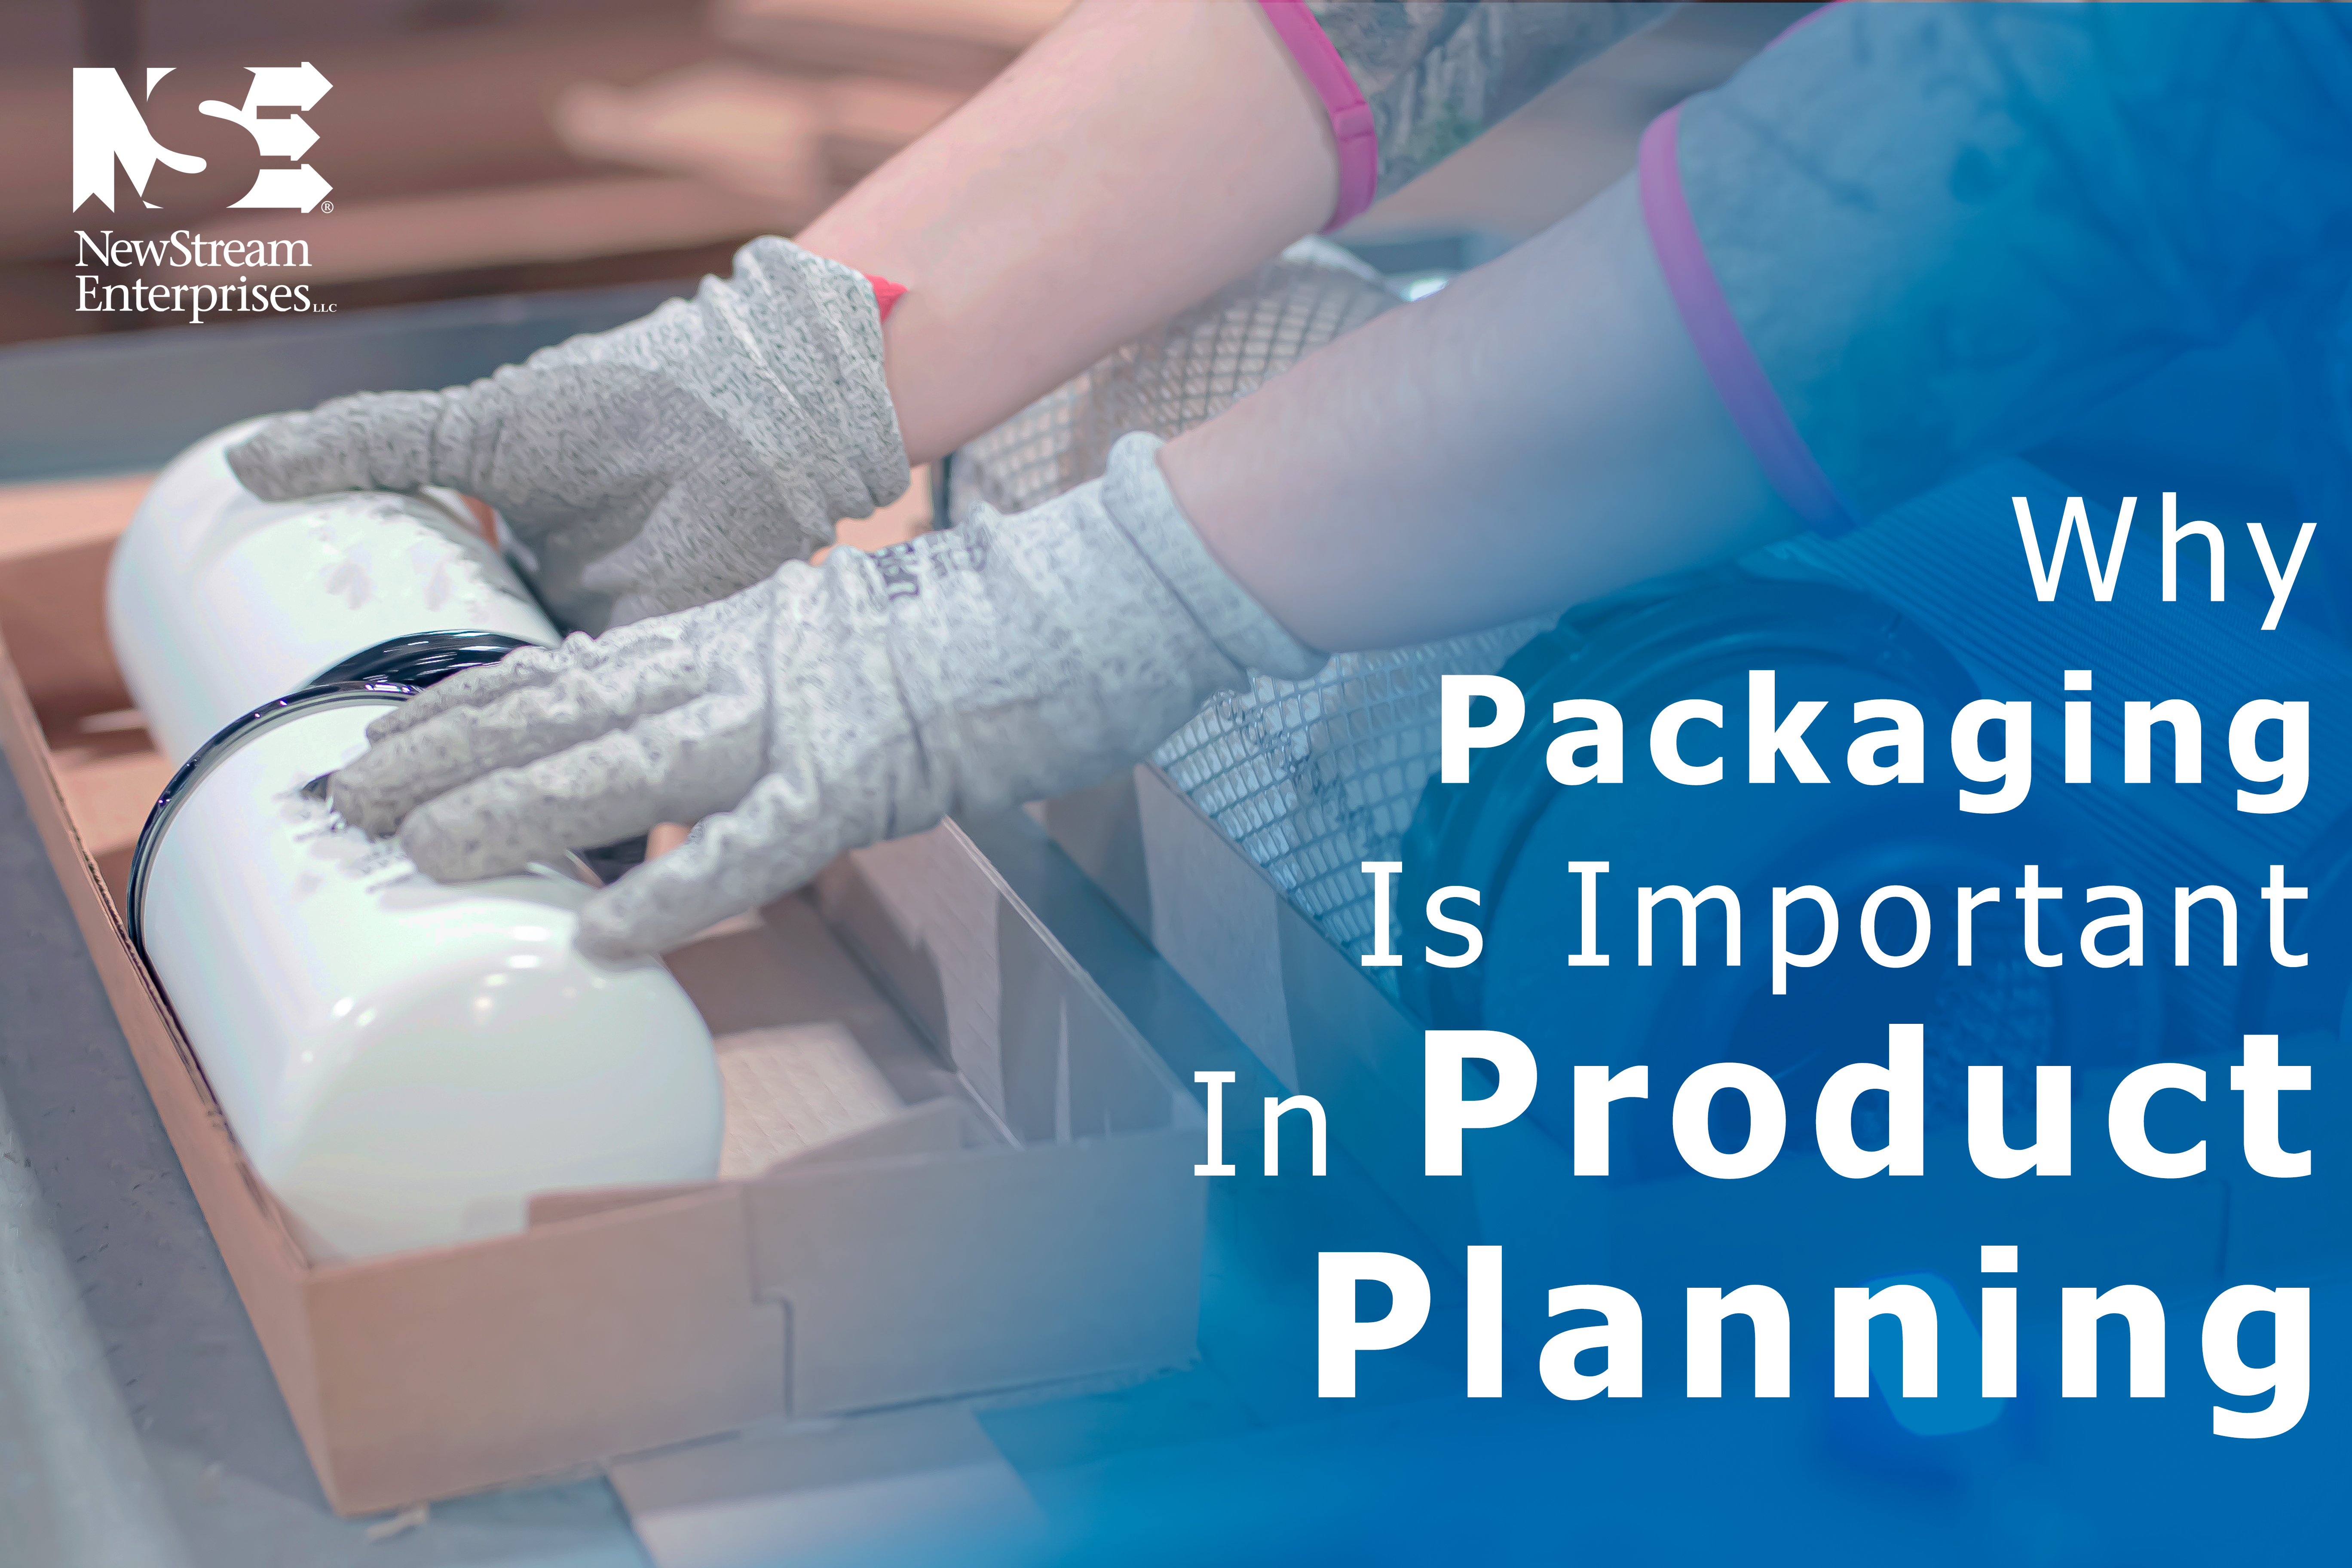 Why Packaging is Important in Product Planning